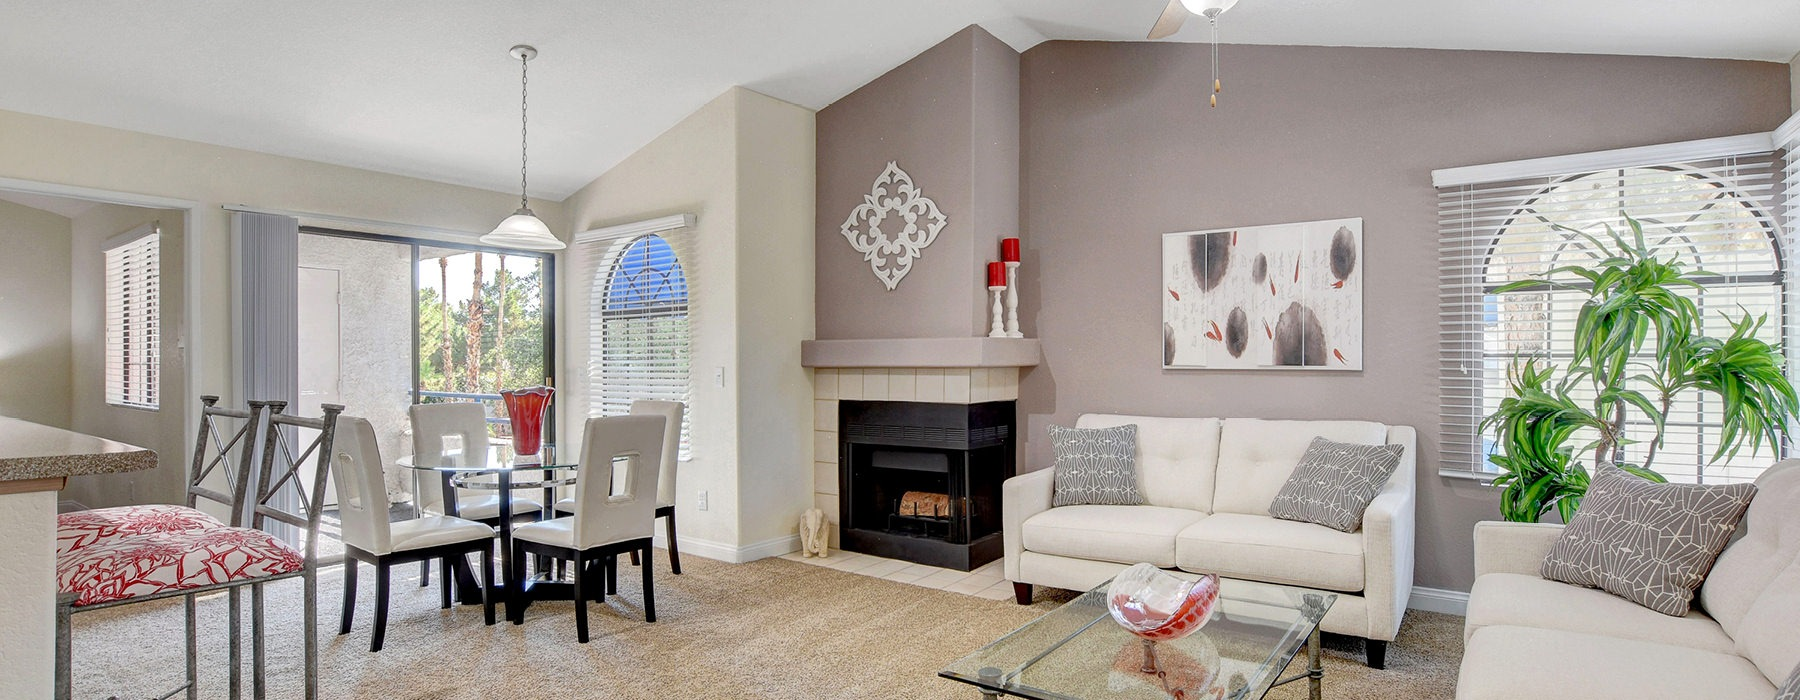 brightly lit open concept living room